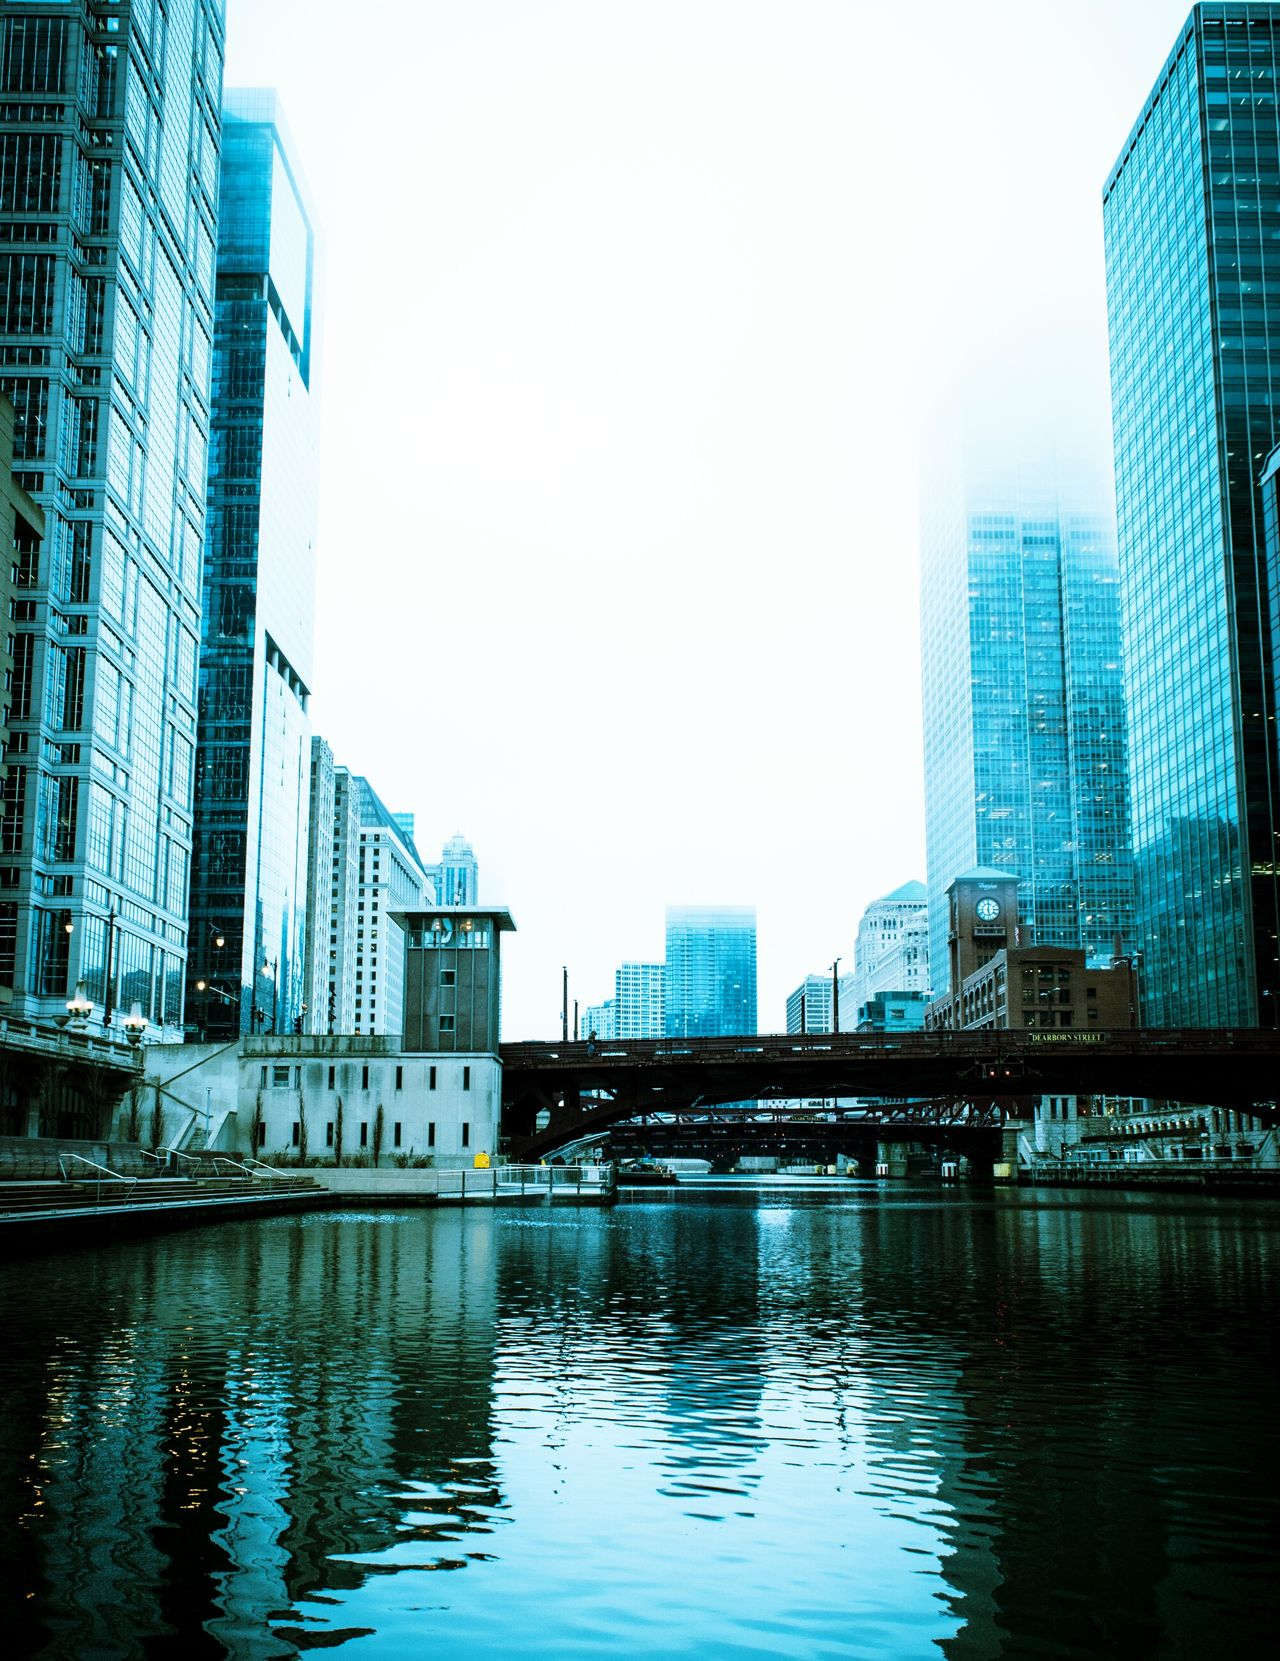 Reflection City Architecture Building Exterior Skyscraper Built Structure Water Urban Skyline City Life Downtown District Cityscape Office Building Exterior City Life Futuristic Chicago Chicago Architecture Cloud Sculpture Low Angle View From My Point Of View Cityscape Travel Destinations